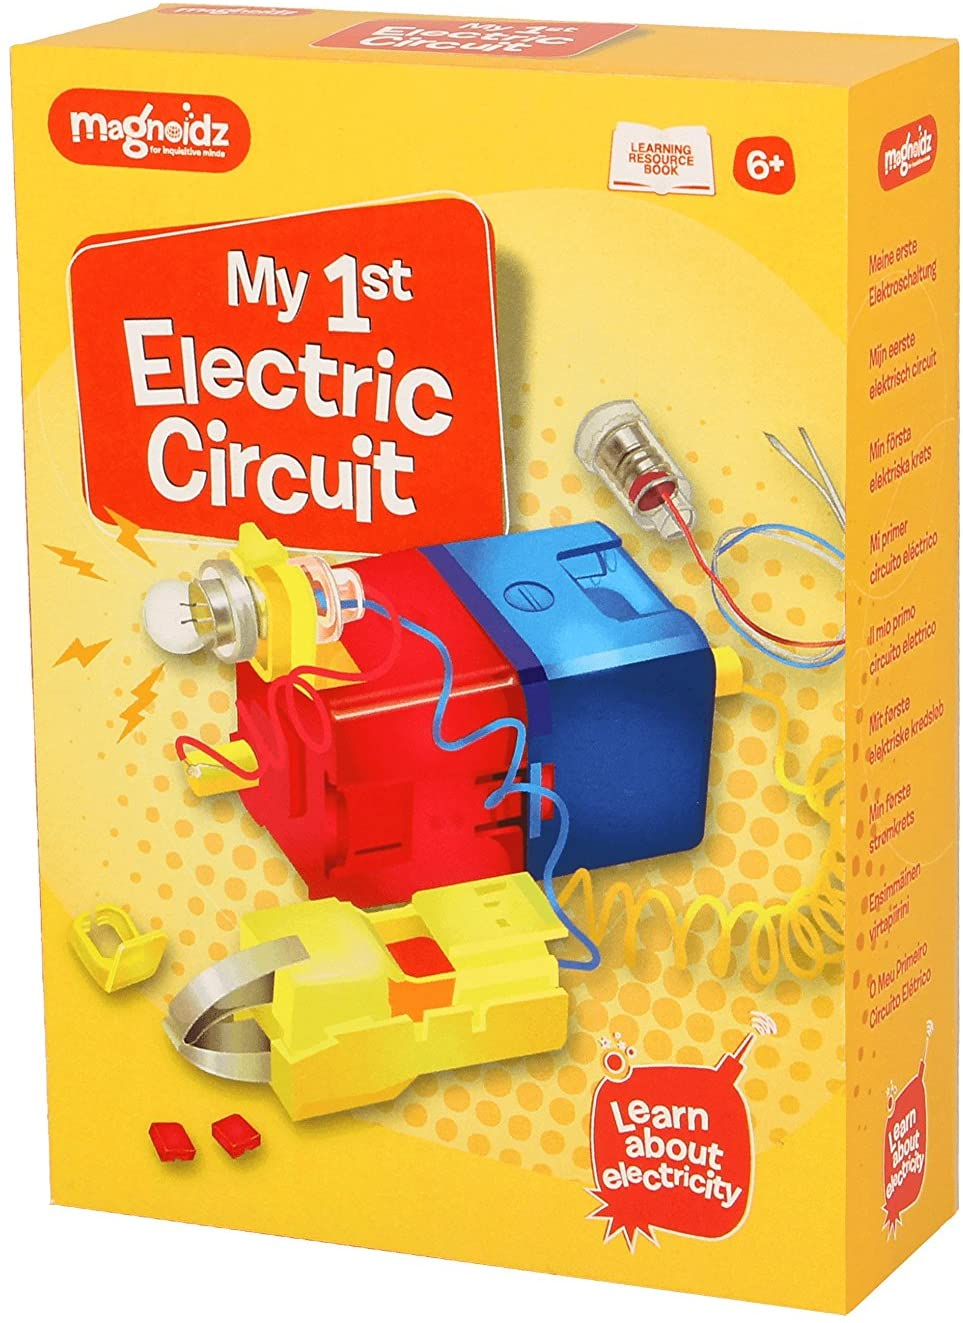 Magnoidz Labs My 1st Electric Circuit Science Kit The Bubble Room Toy Store Dublin